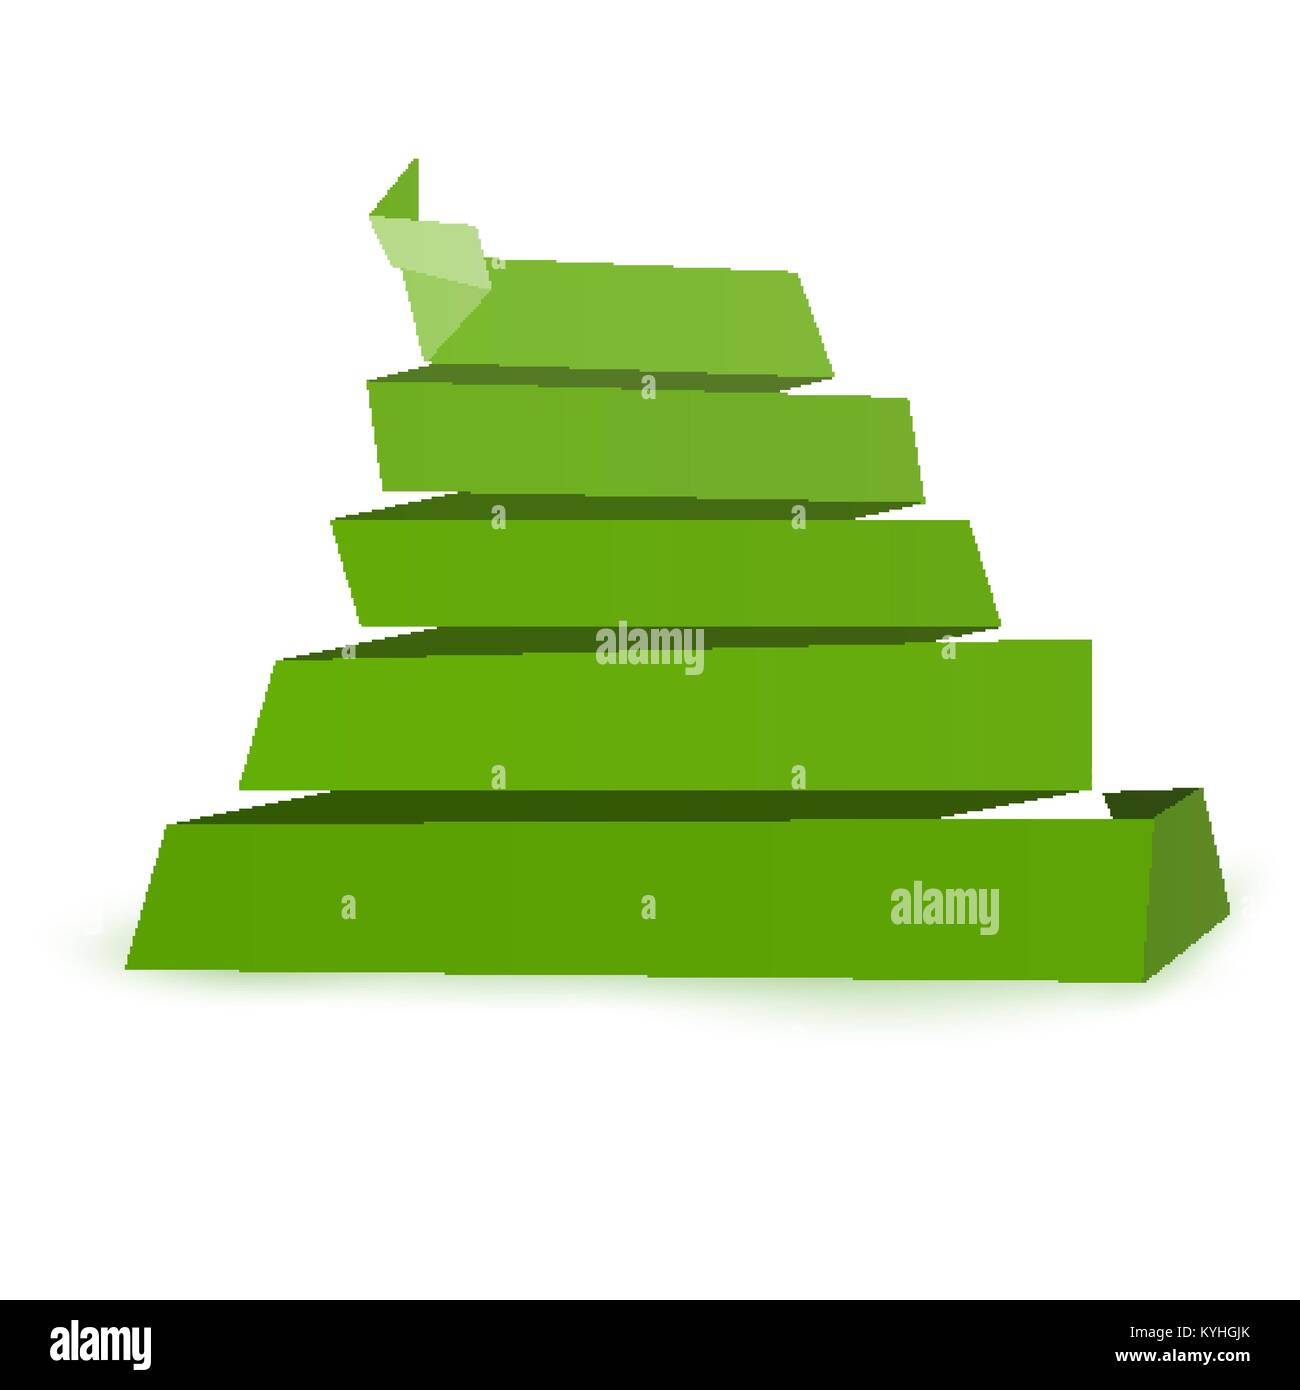 Green Paper Origami Pyramid Folded Backdrop Template